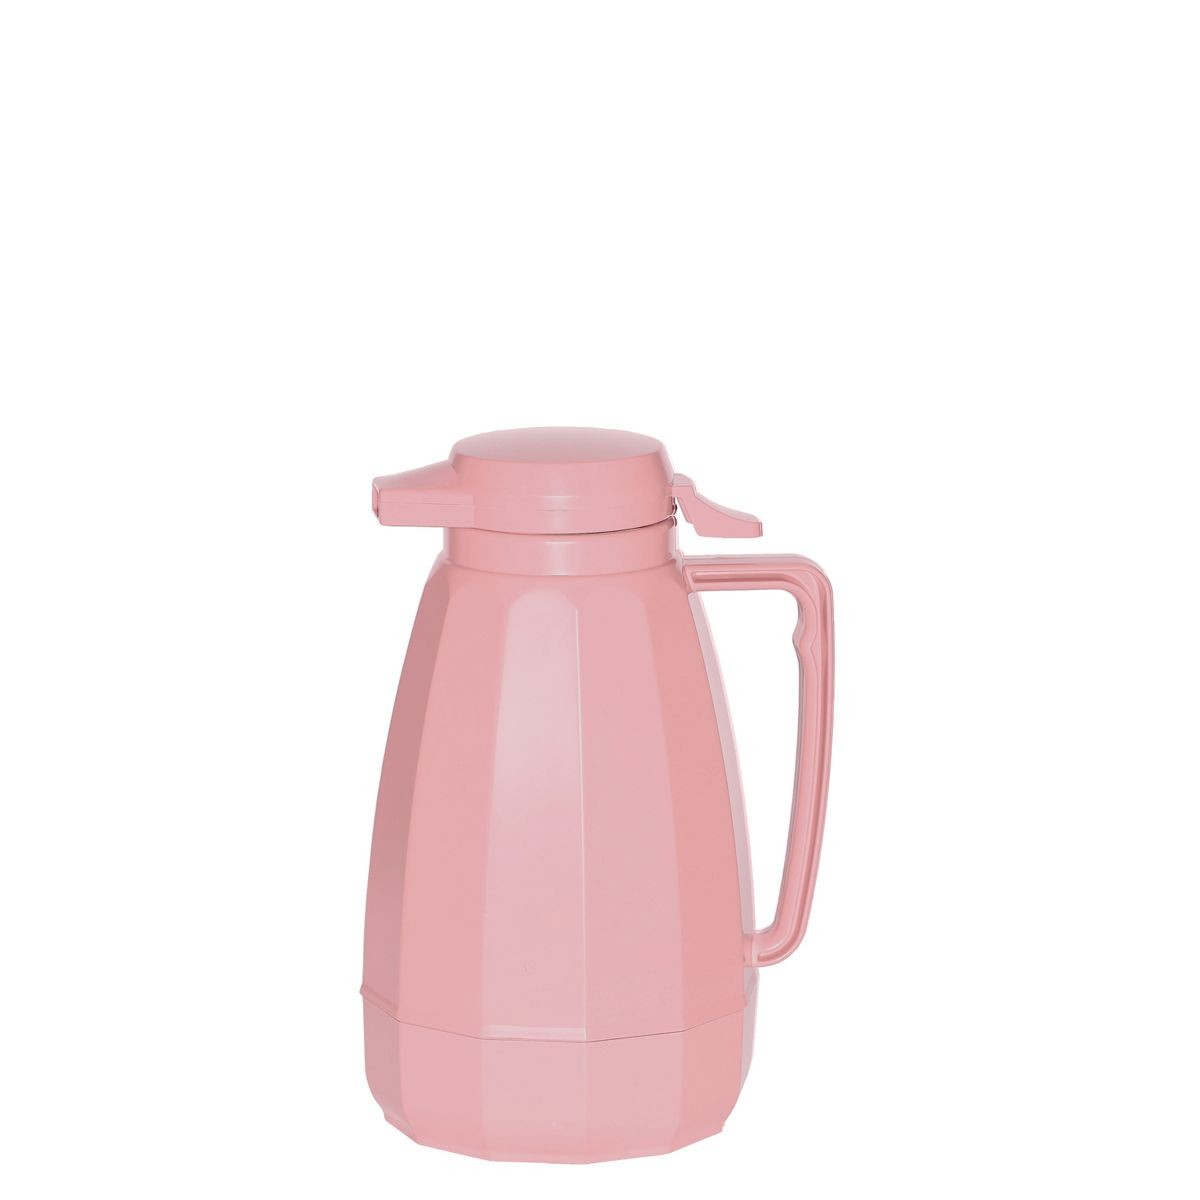 Service Ideas NG101MV New Generation Mauve Coffee Server, 1 Liter (34 oz.)